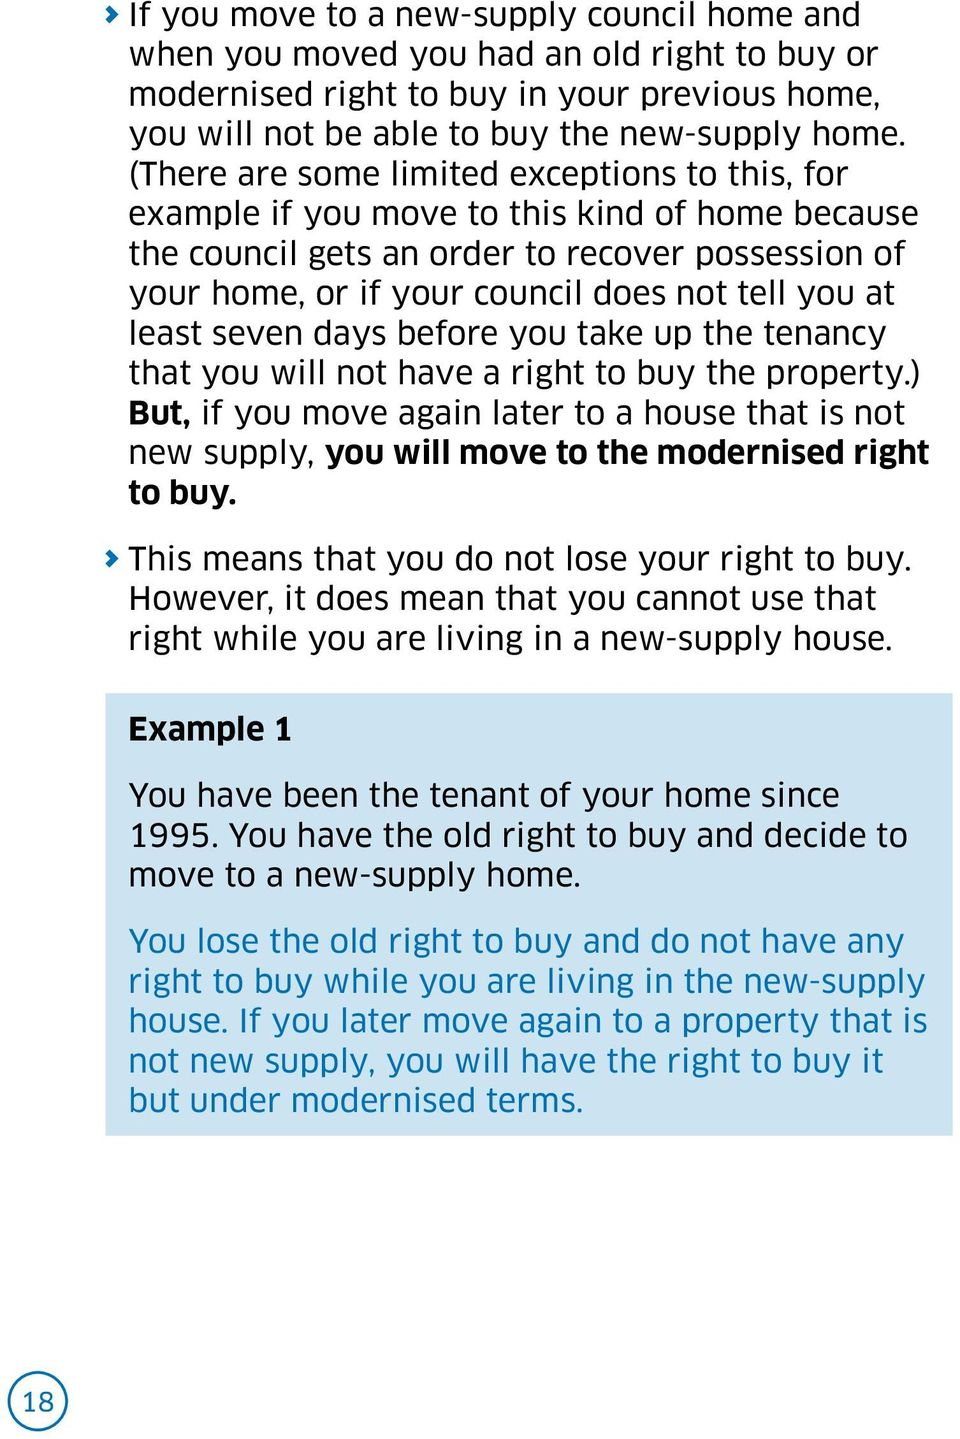 least seven days before you take up the tenancy that you will not have a right to buy the property.